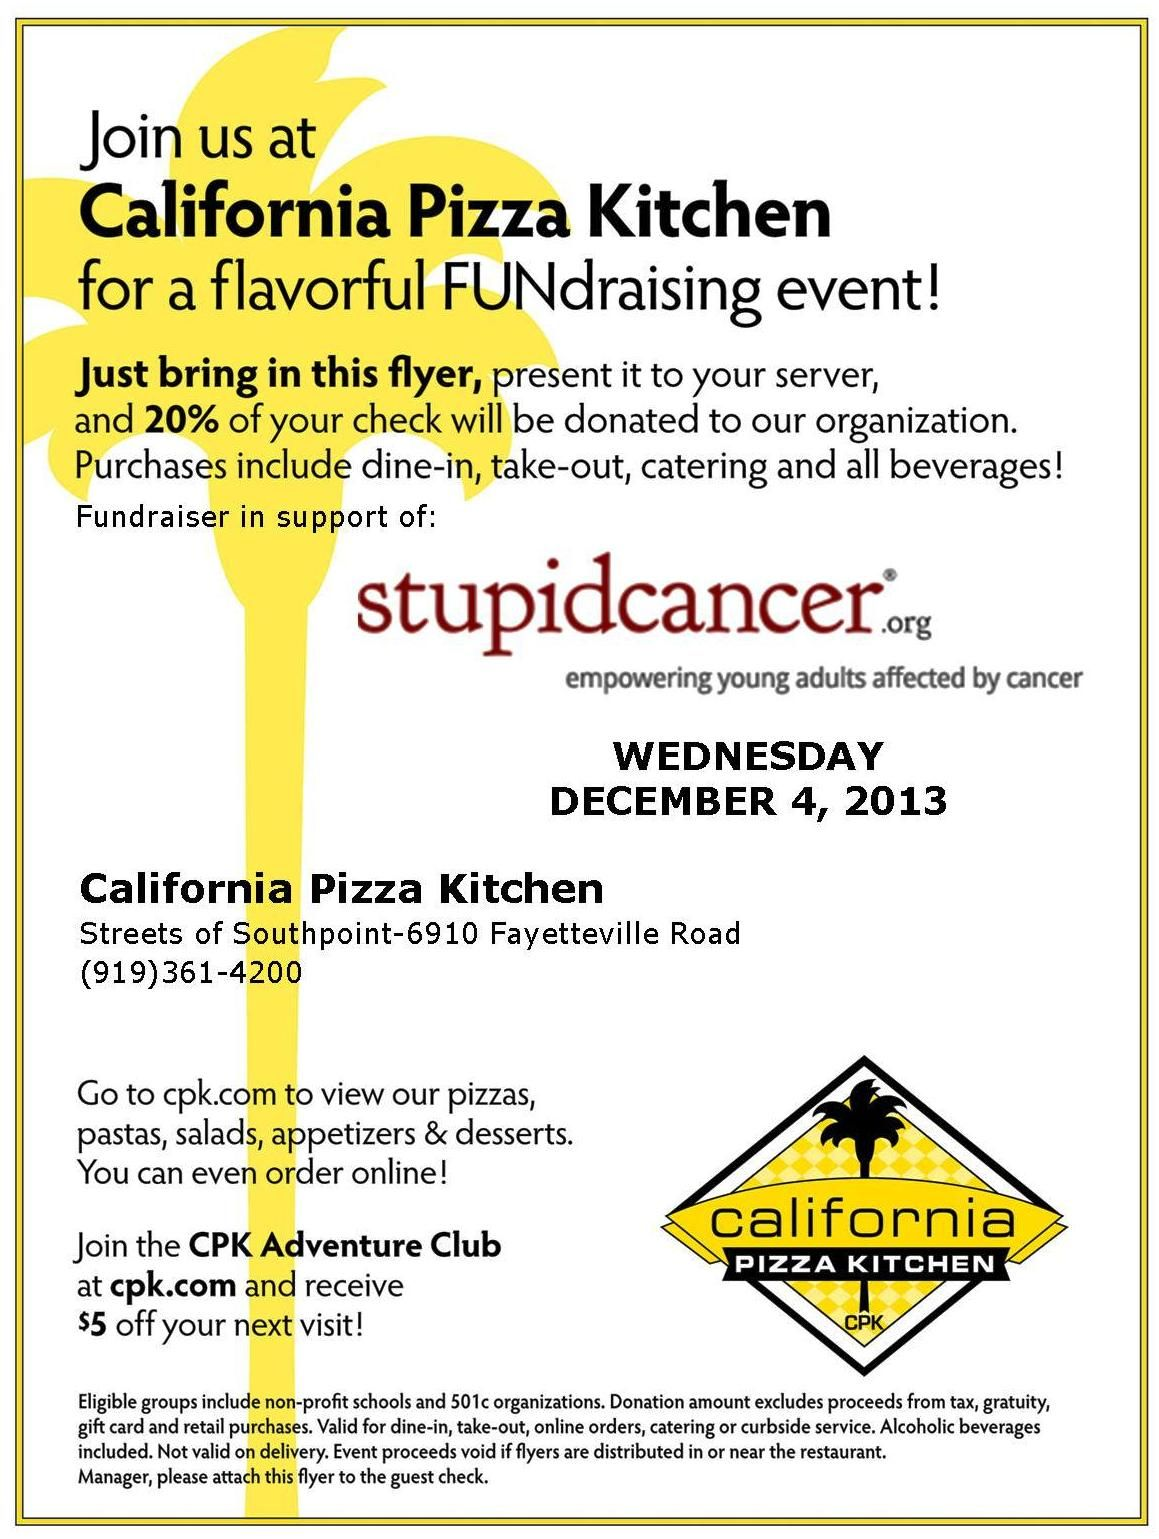 California Pizza Kitchen fundraiser in support of Stupid Cancer ...